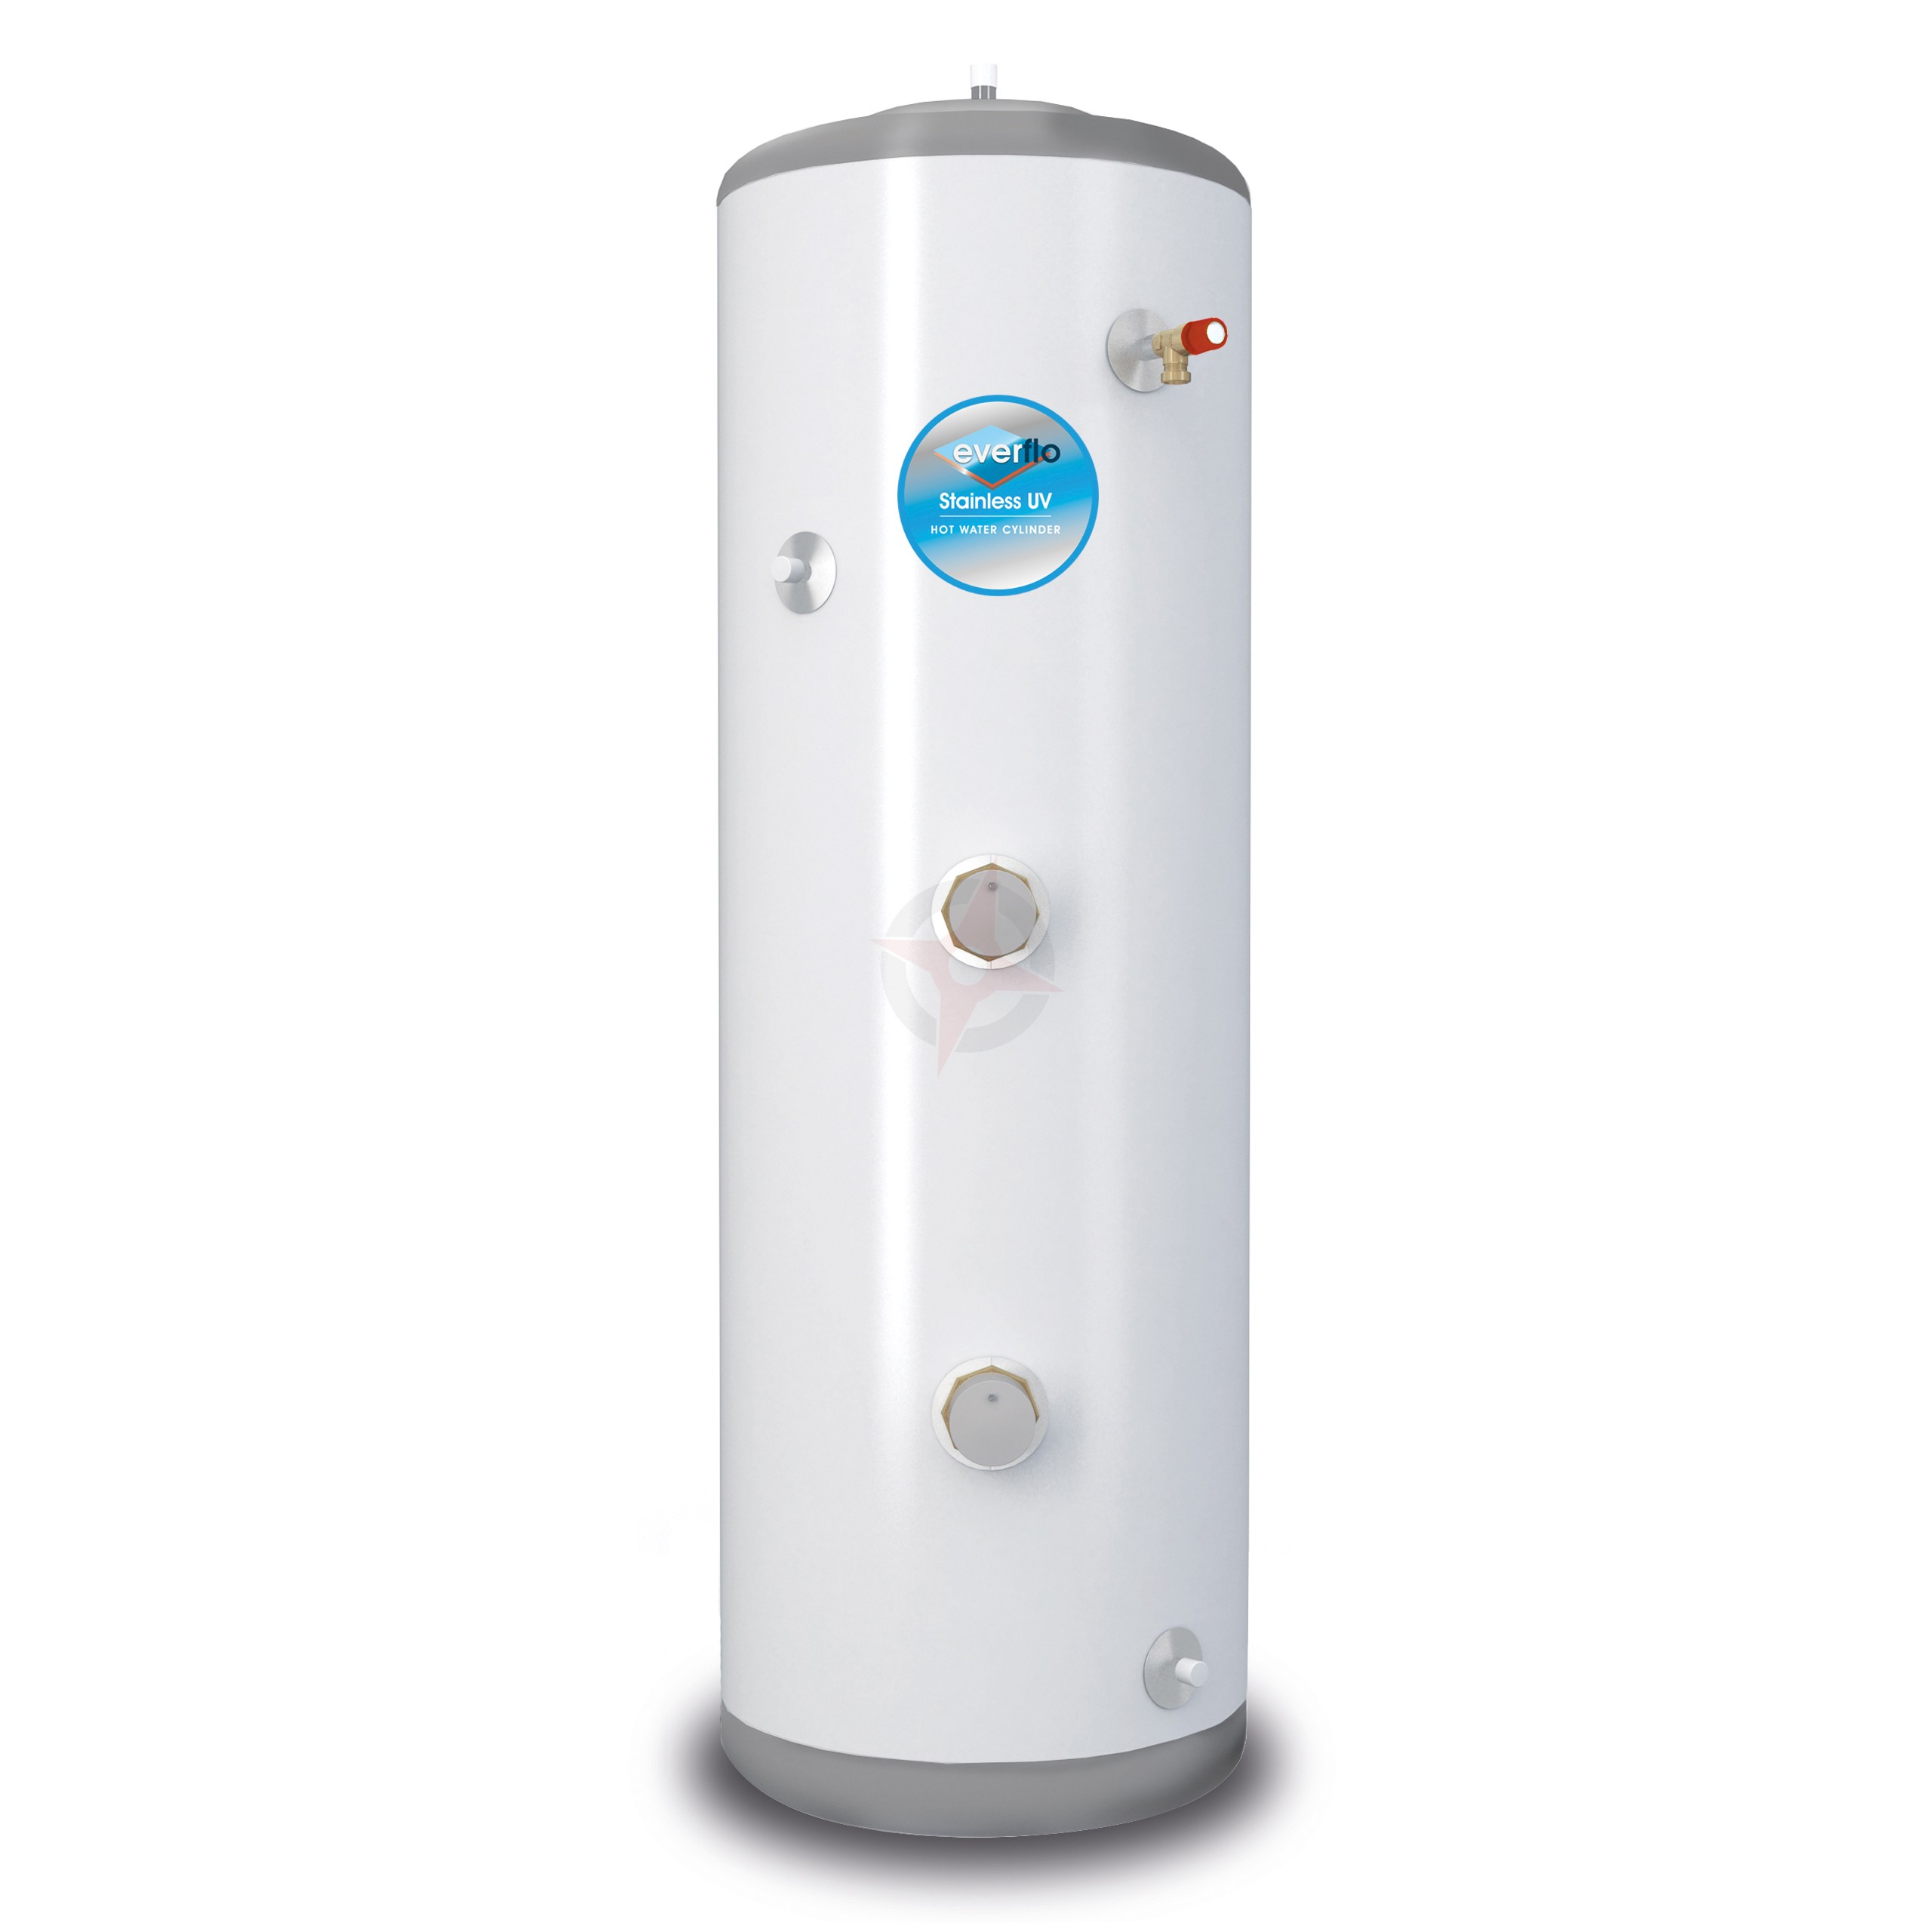 everflo Stainless 120L Direct Unvented Hot Water Storage Cylinder & Kit